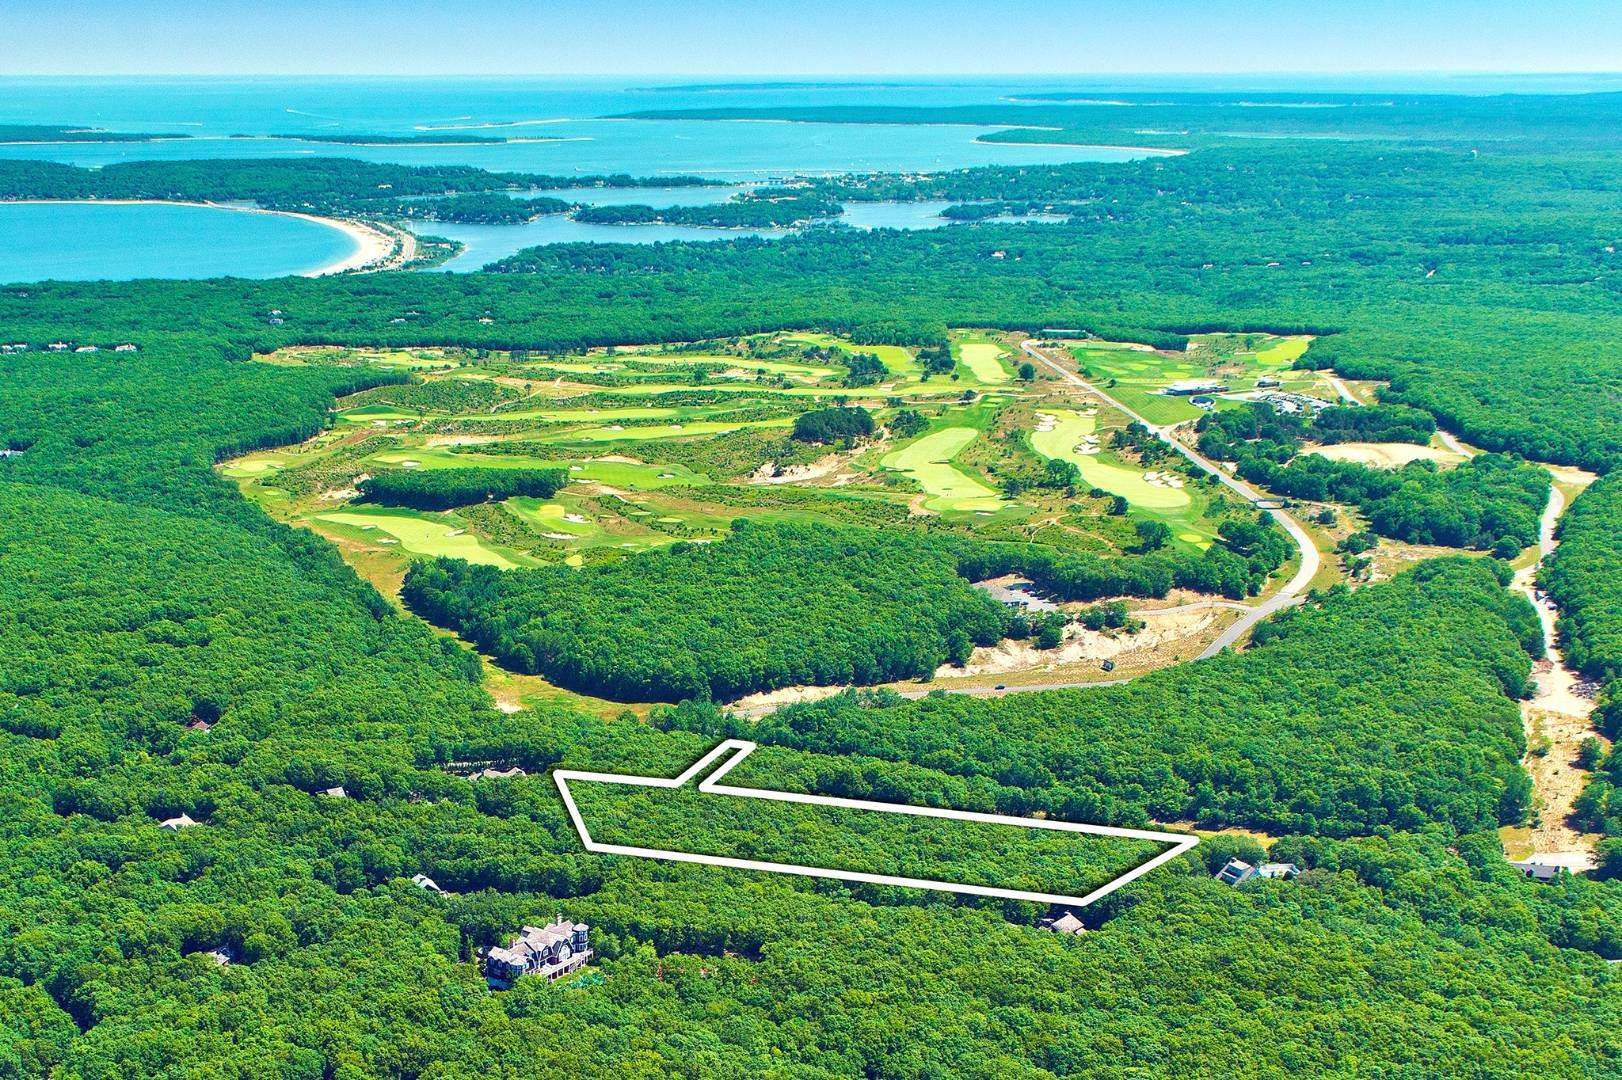 Land for Sale at Top Of The World Building Lot 1193 Millstone Road, Sag Harbor, NY 11963